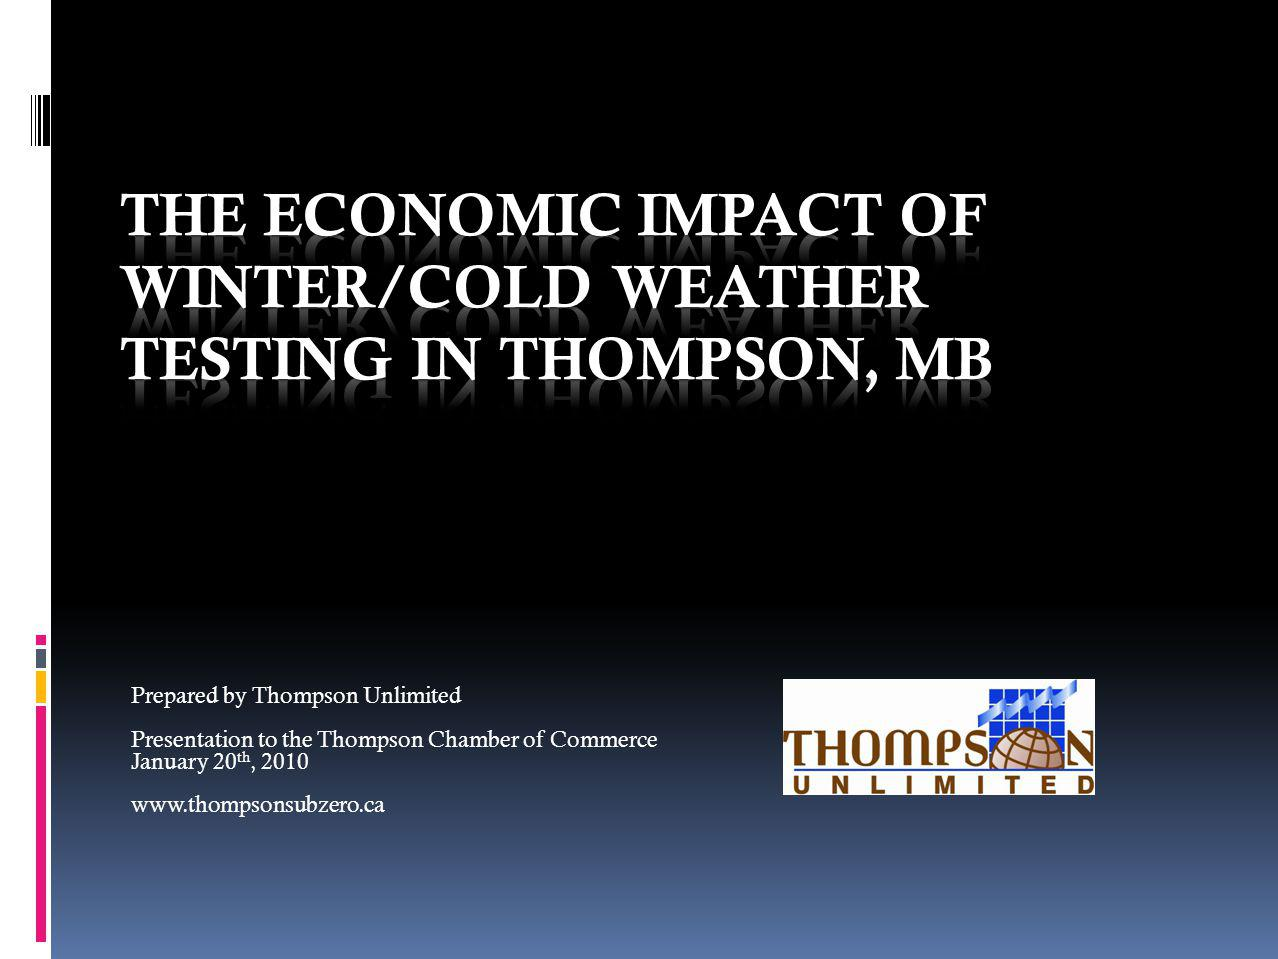 The Economic Impact of Winter Weather Testing in Thompson, MB Different tests conducted on machinery in cold/winter weather are a necessary step in a manufacturers product R&D process, as well as for continuous/total quality improvement programs.